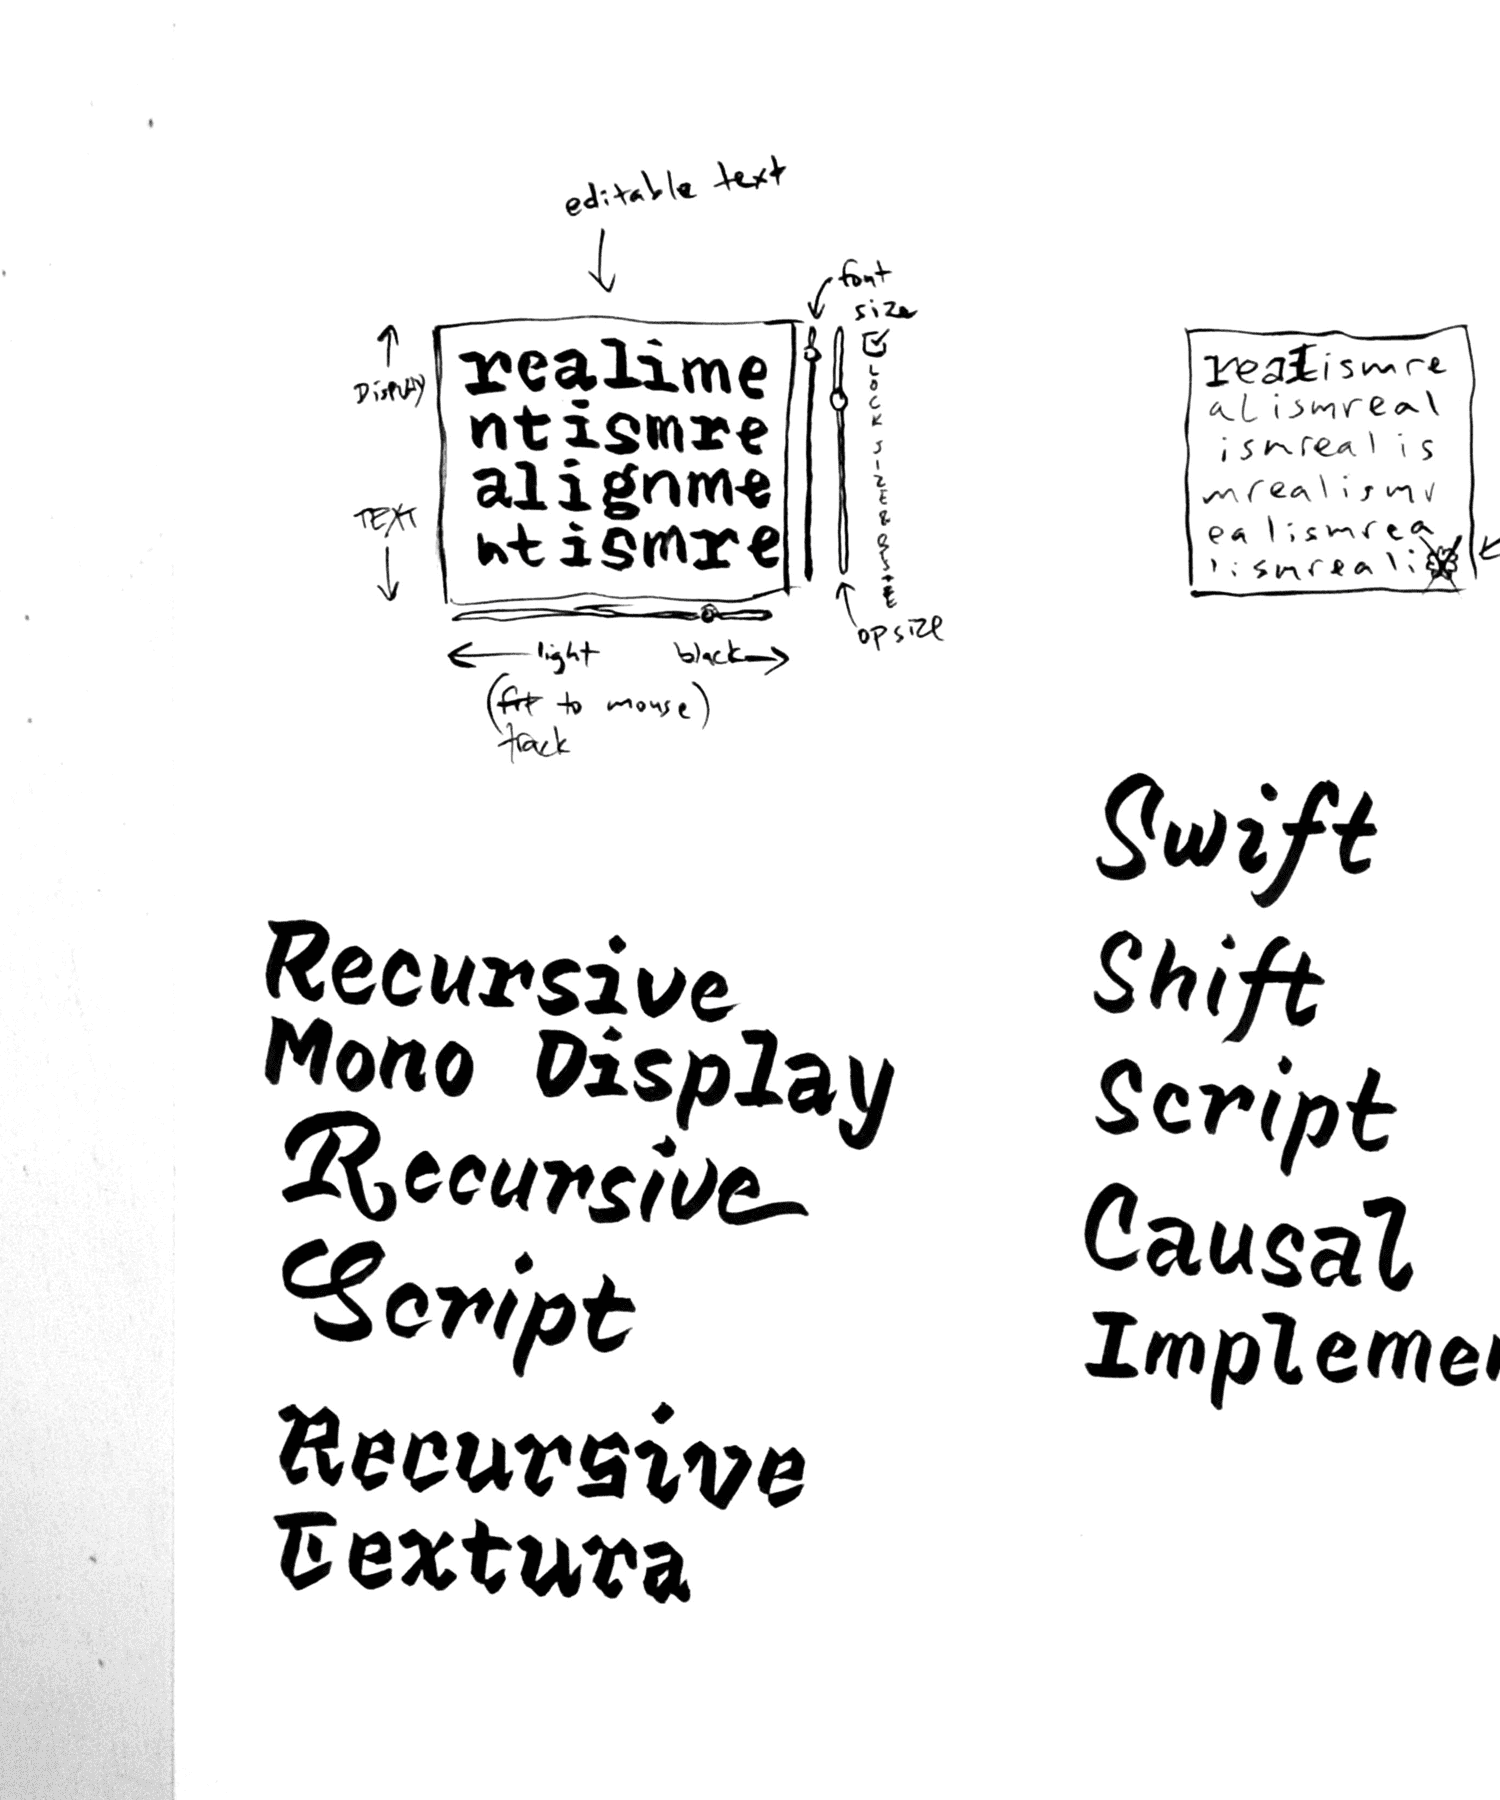 recursive process sketches 18